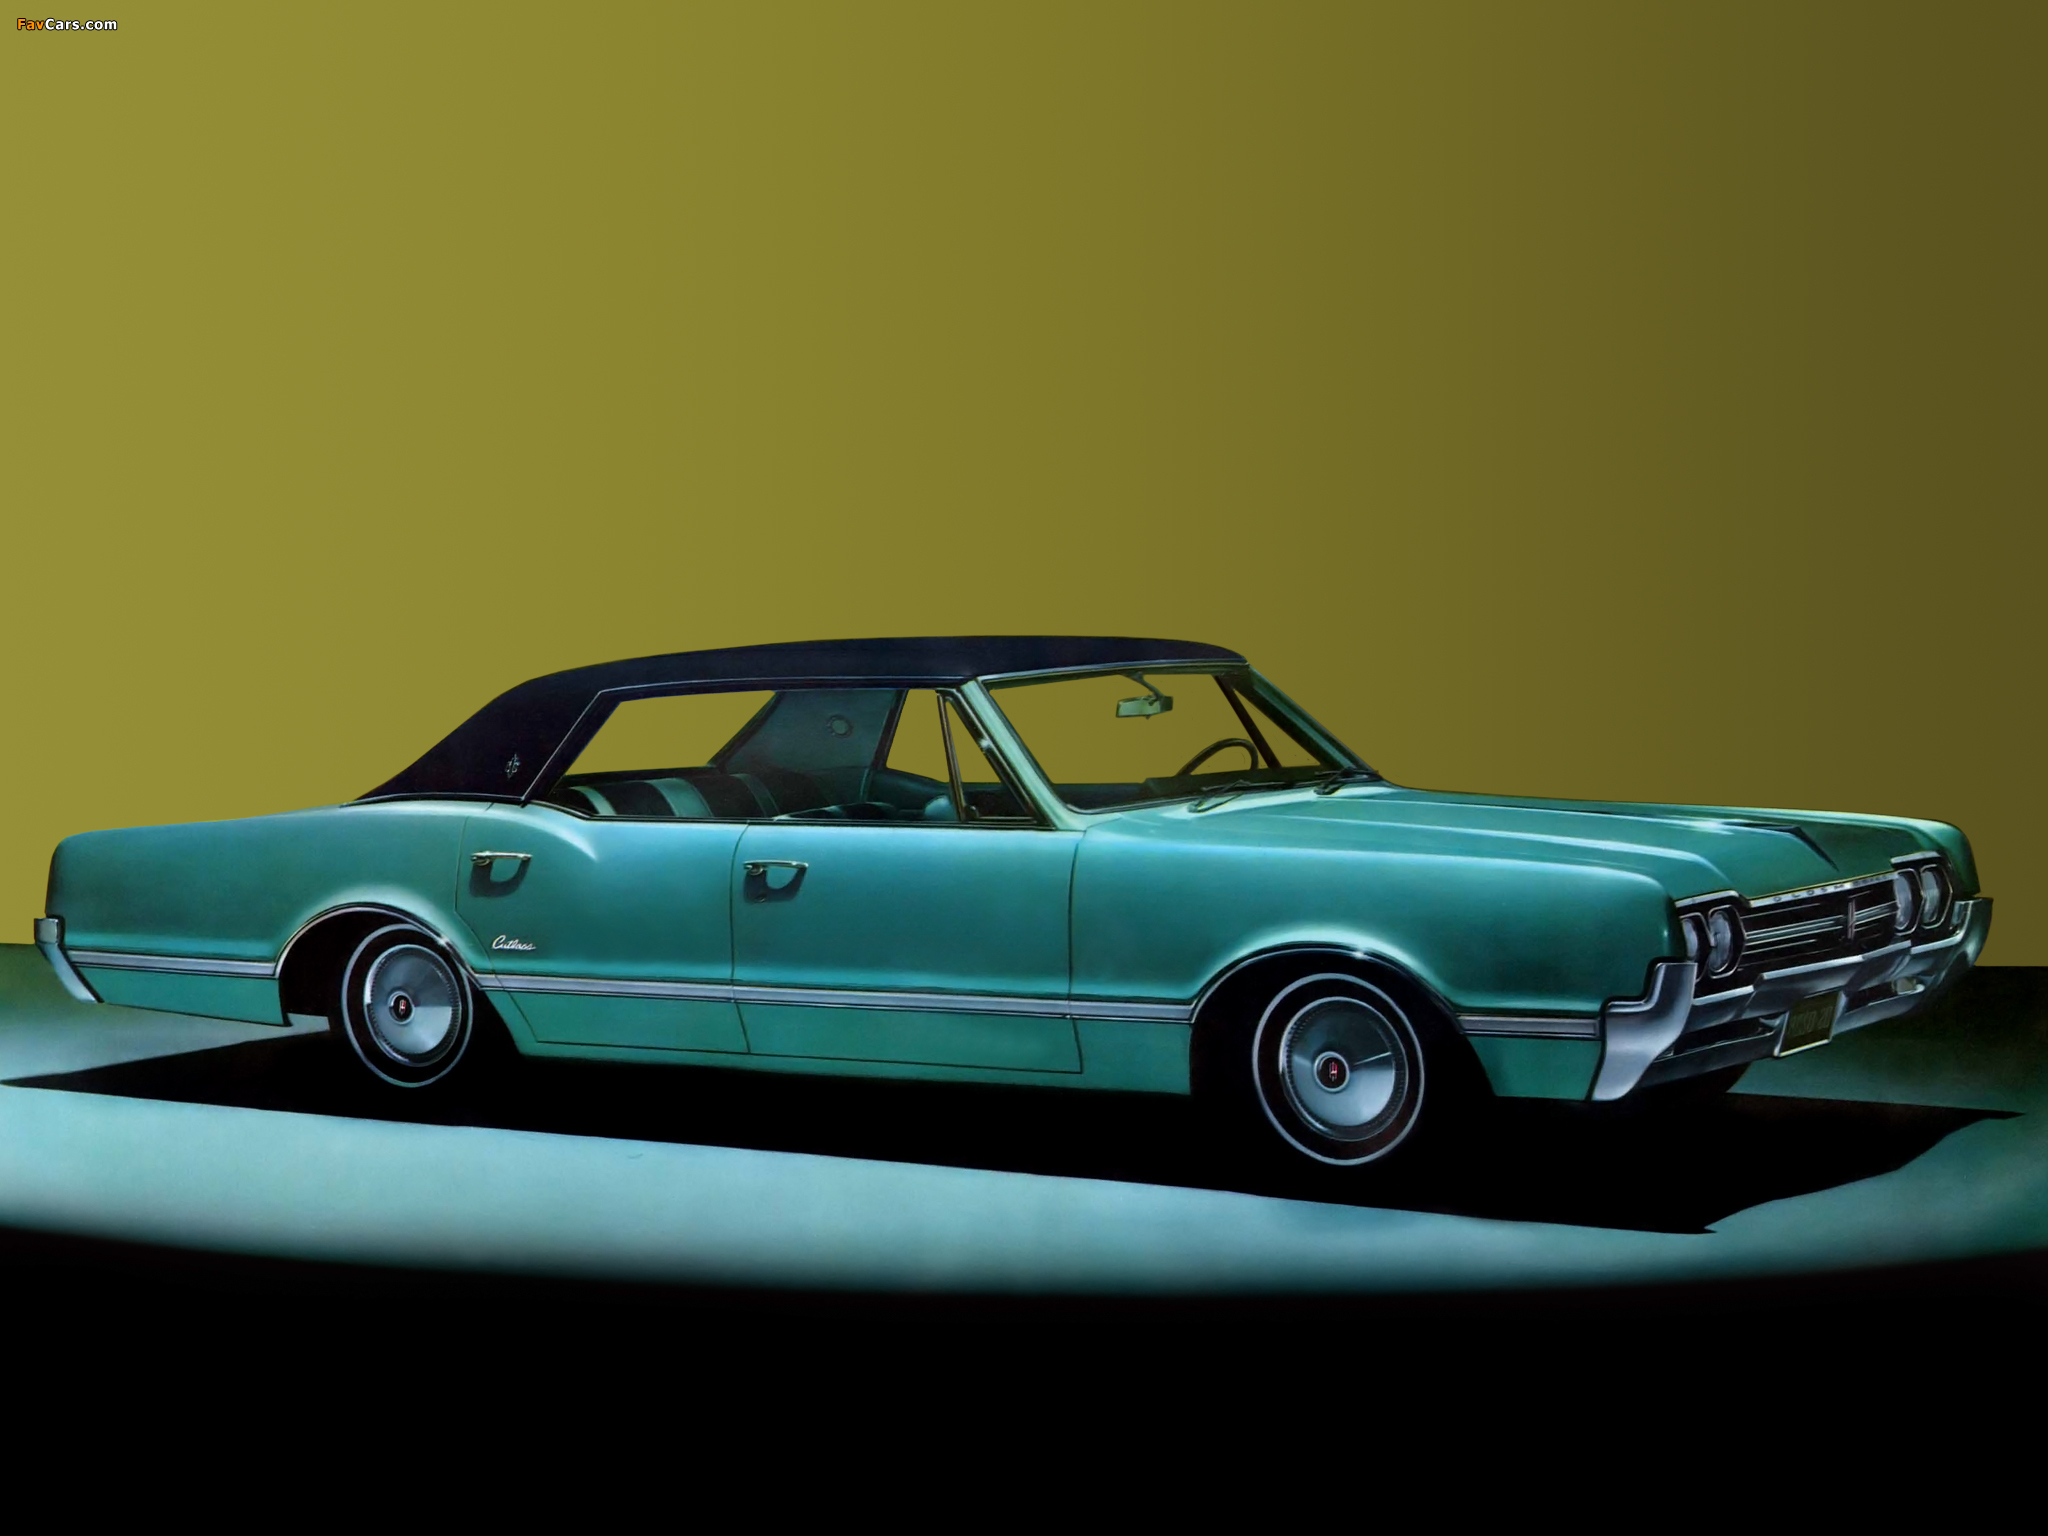 2048x1536 - Oldsmobile Wallpapers 21